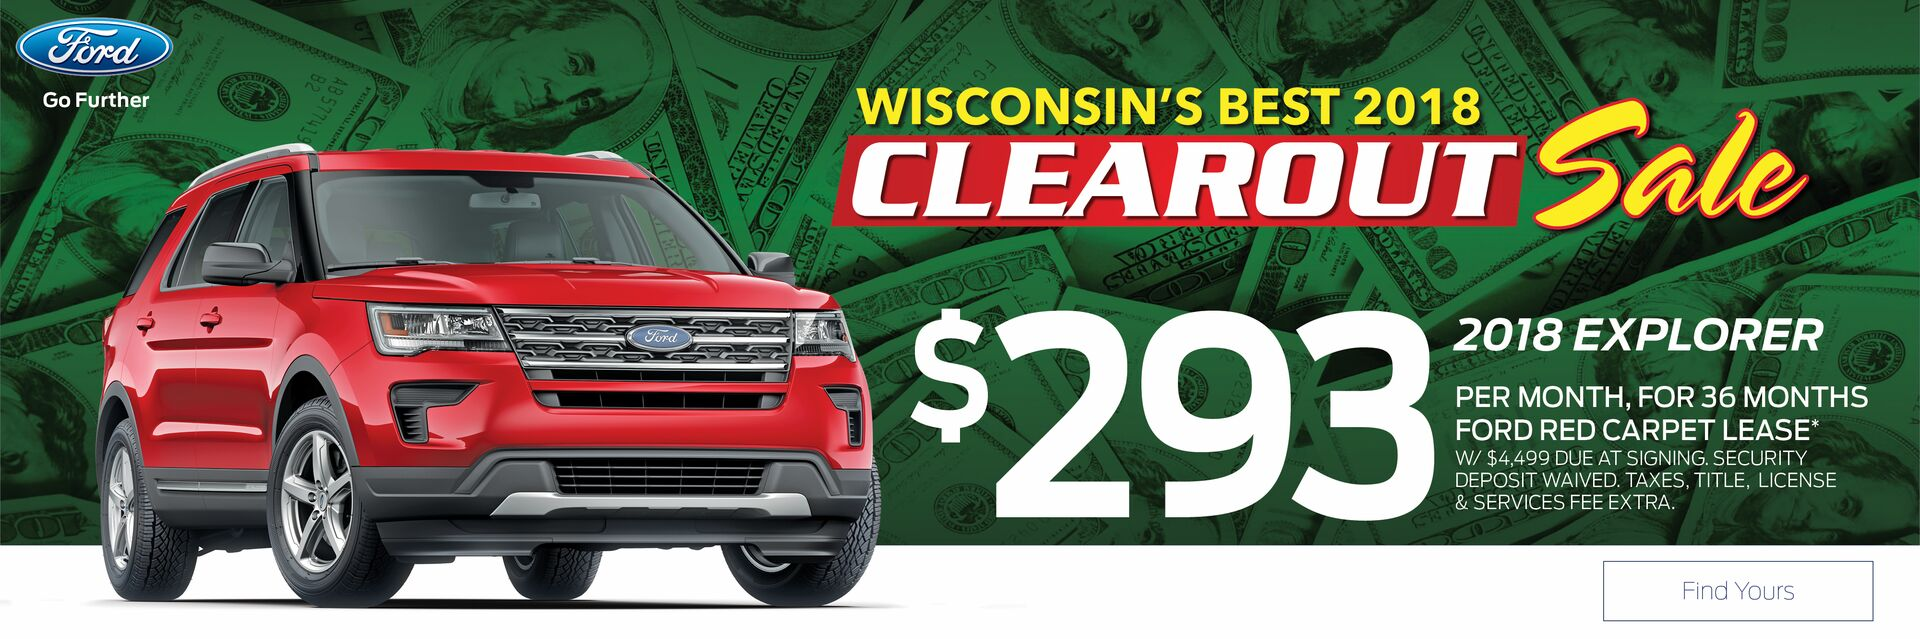 Lease a Ford Explorer at Holiday Ford in Fond du Lac, WI